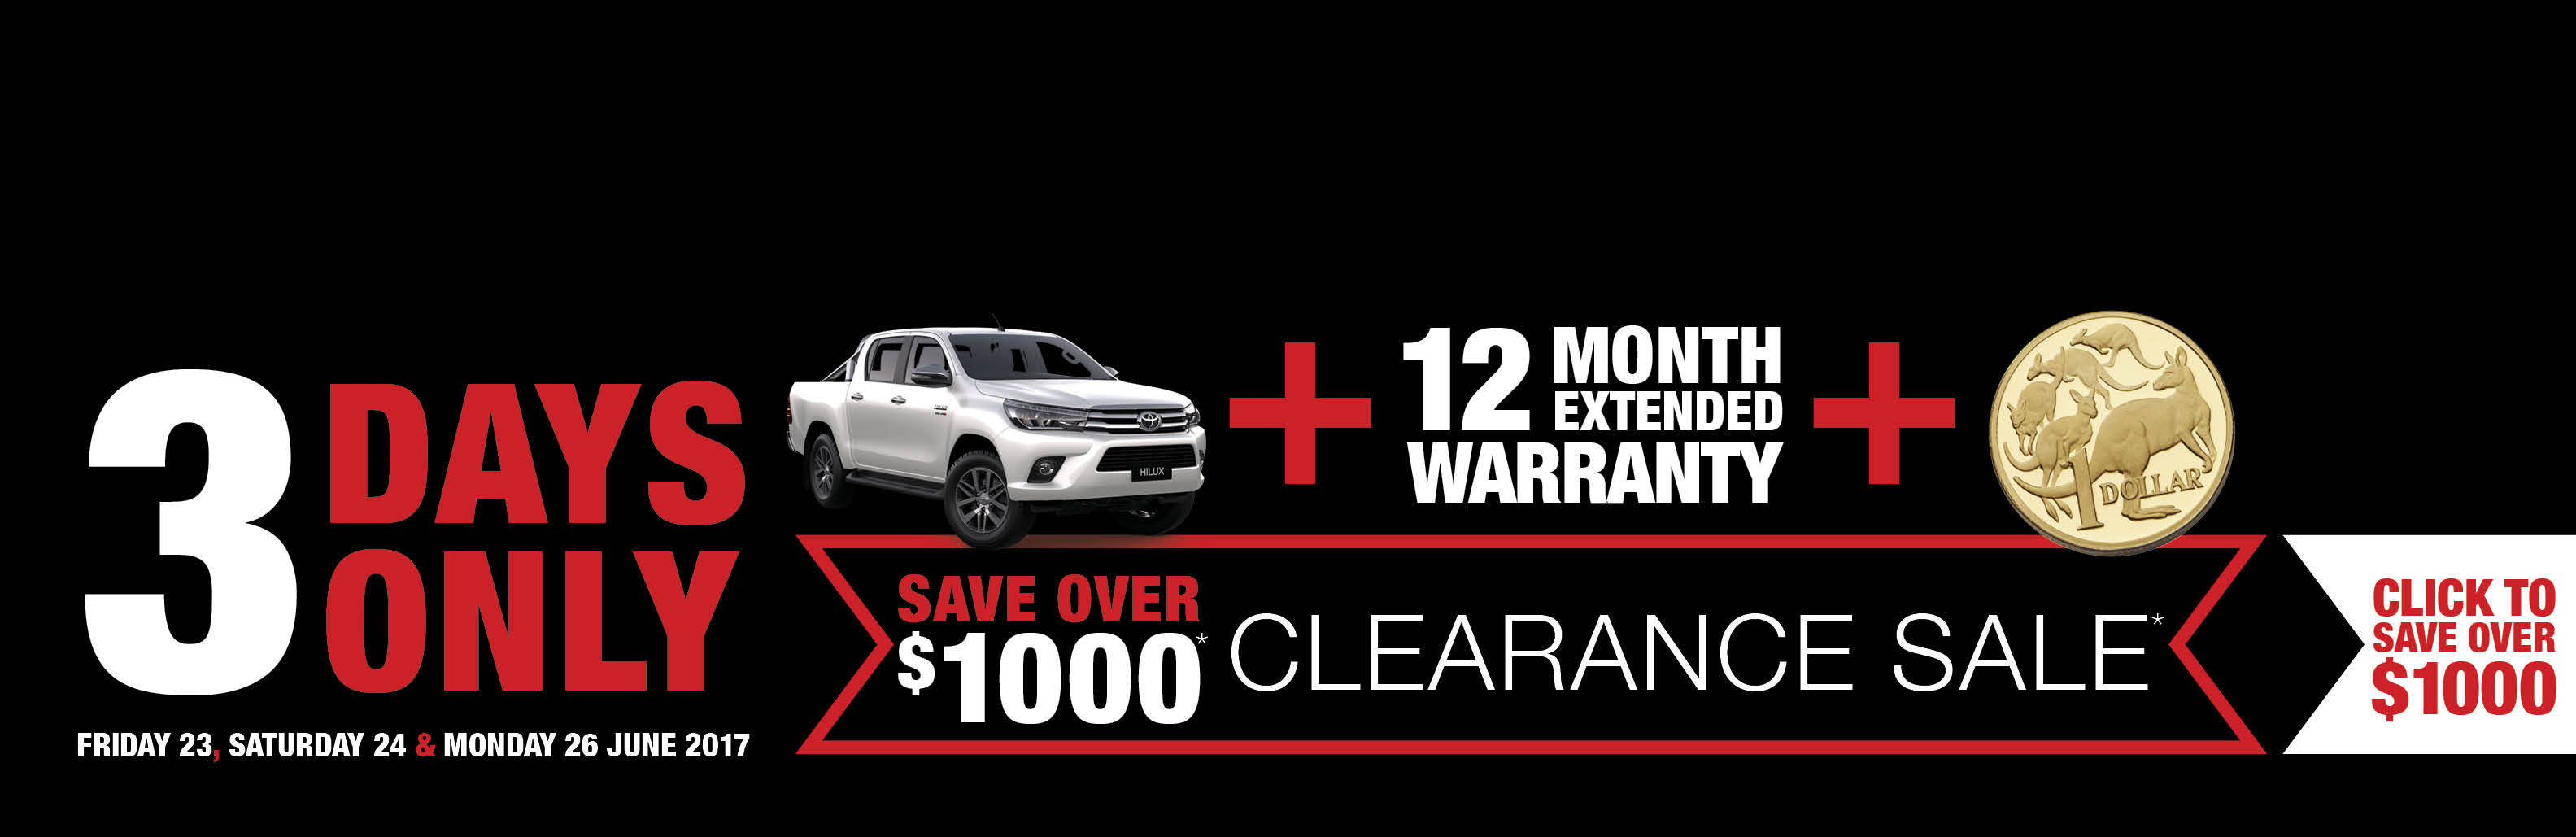 Click to save over $1000 now.